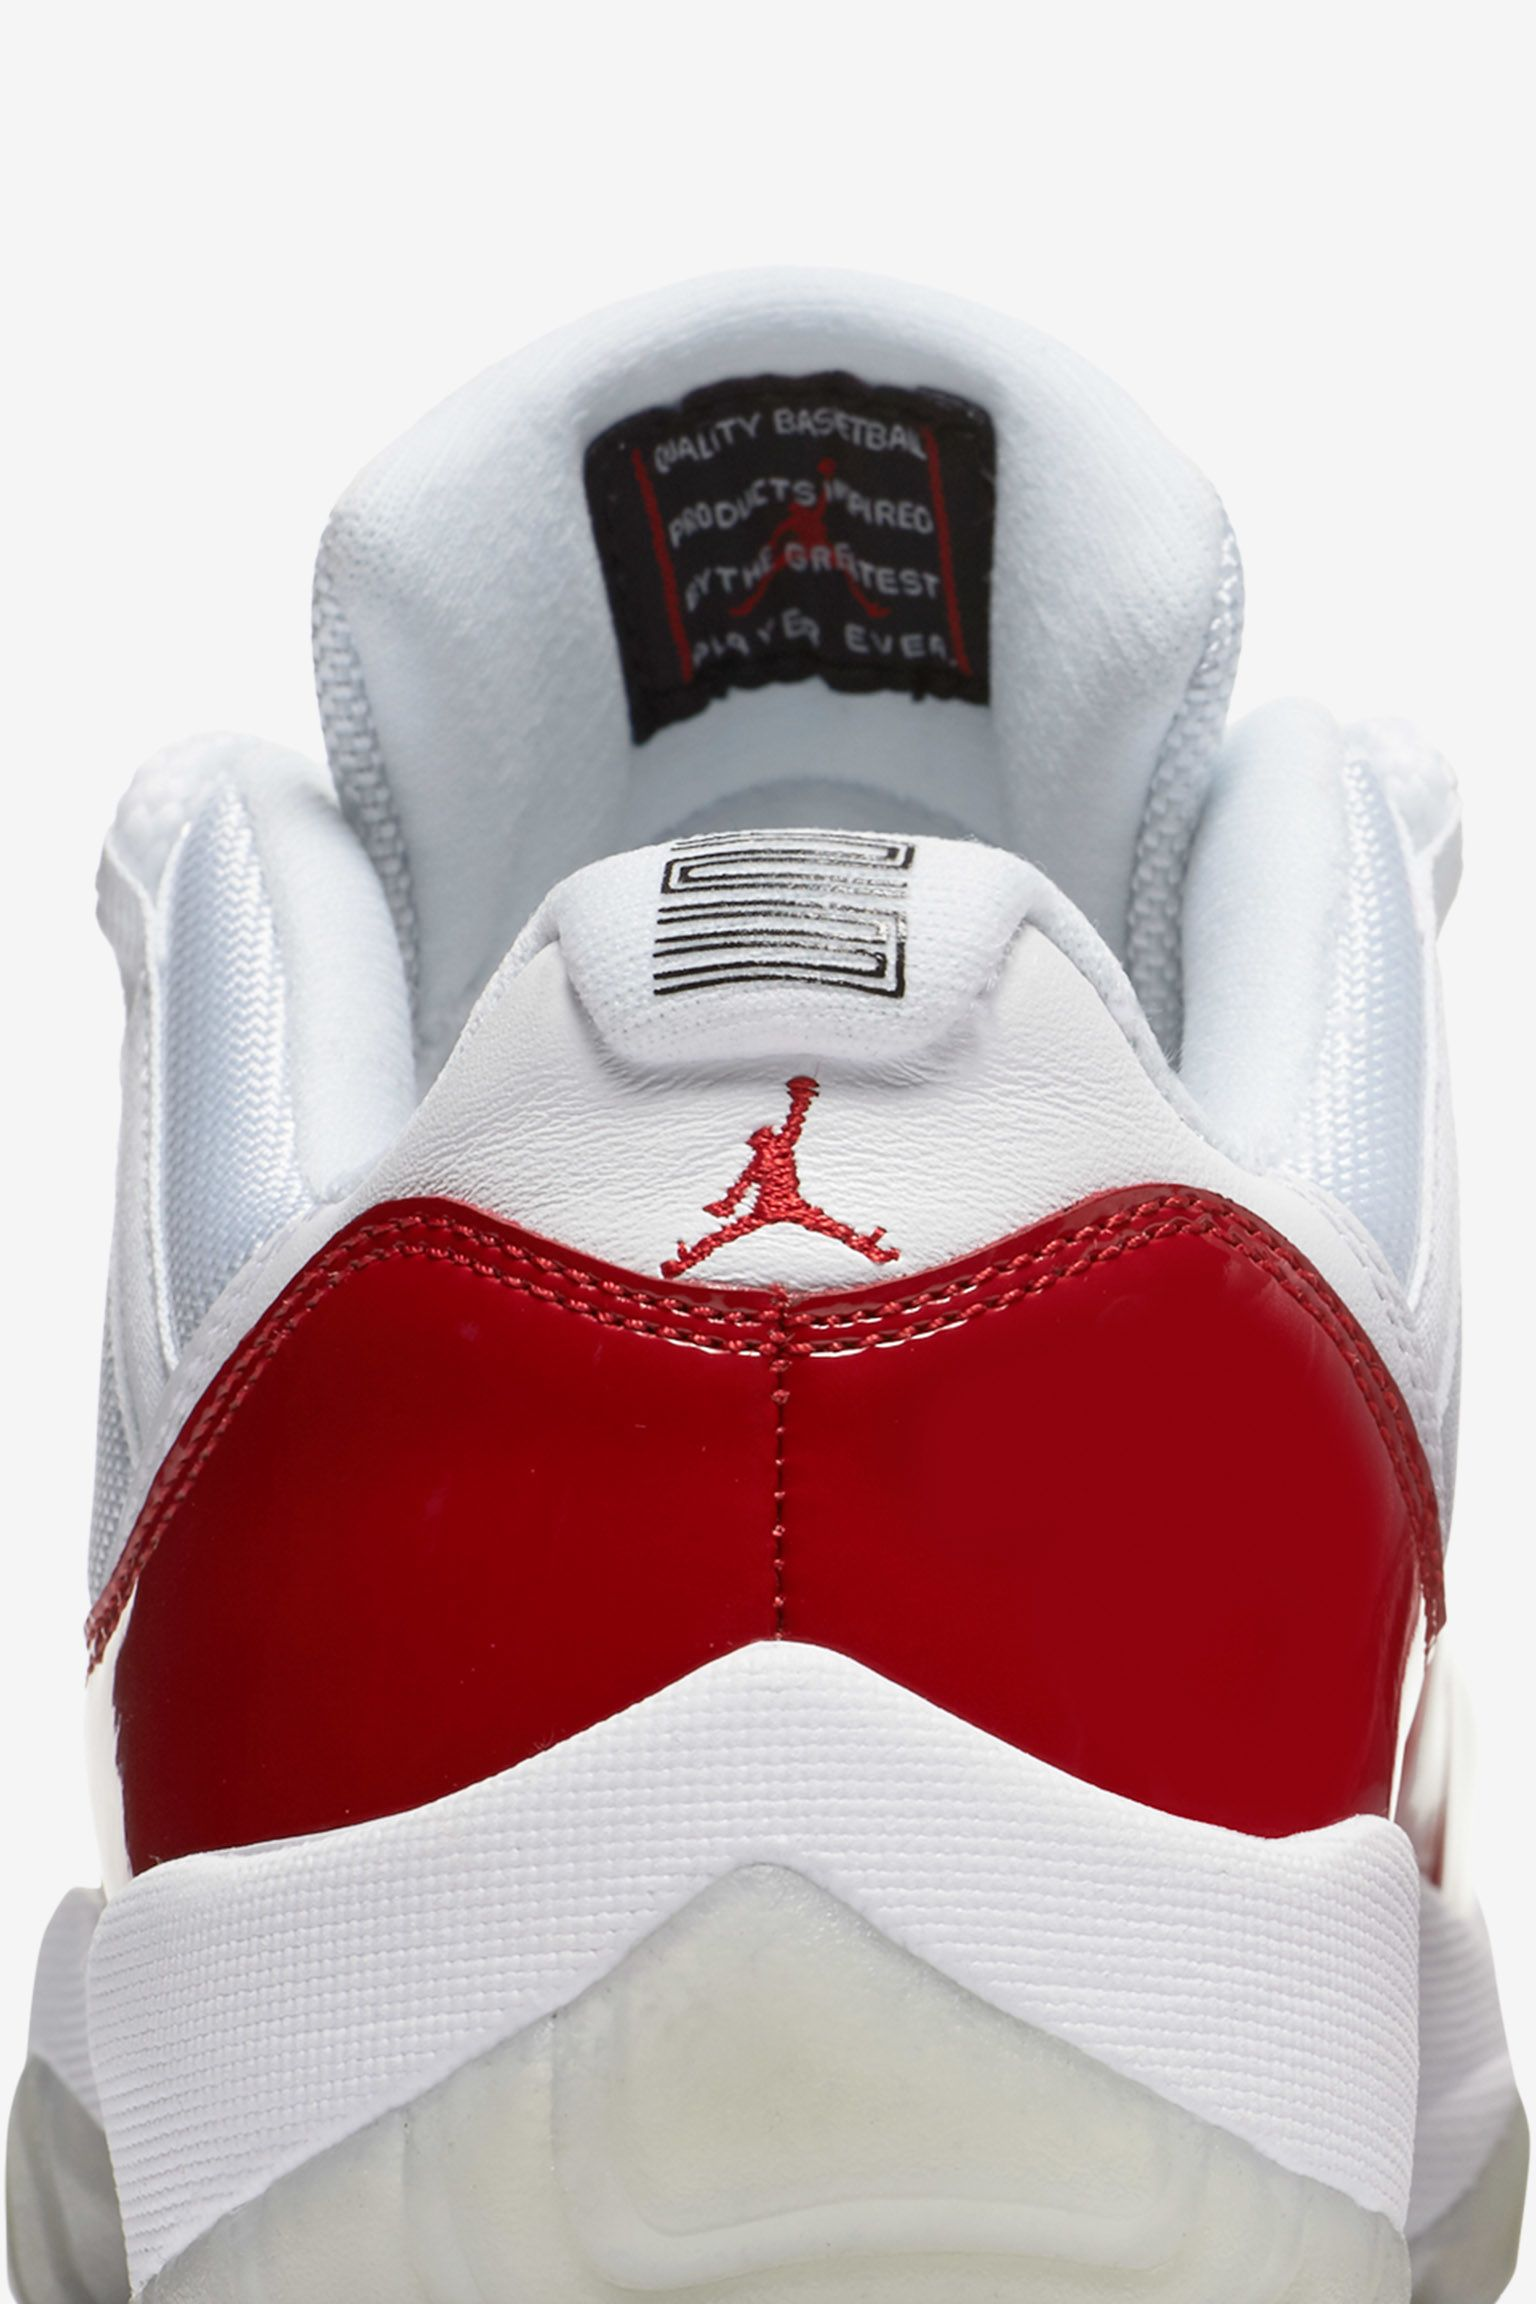 Air Jordan 11 Retro Low 'Varsity Red' Release Date